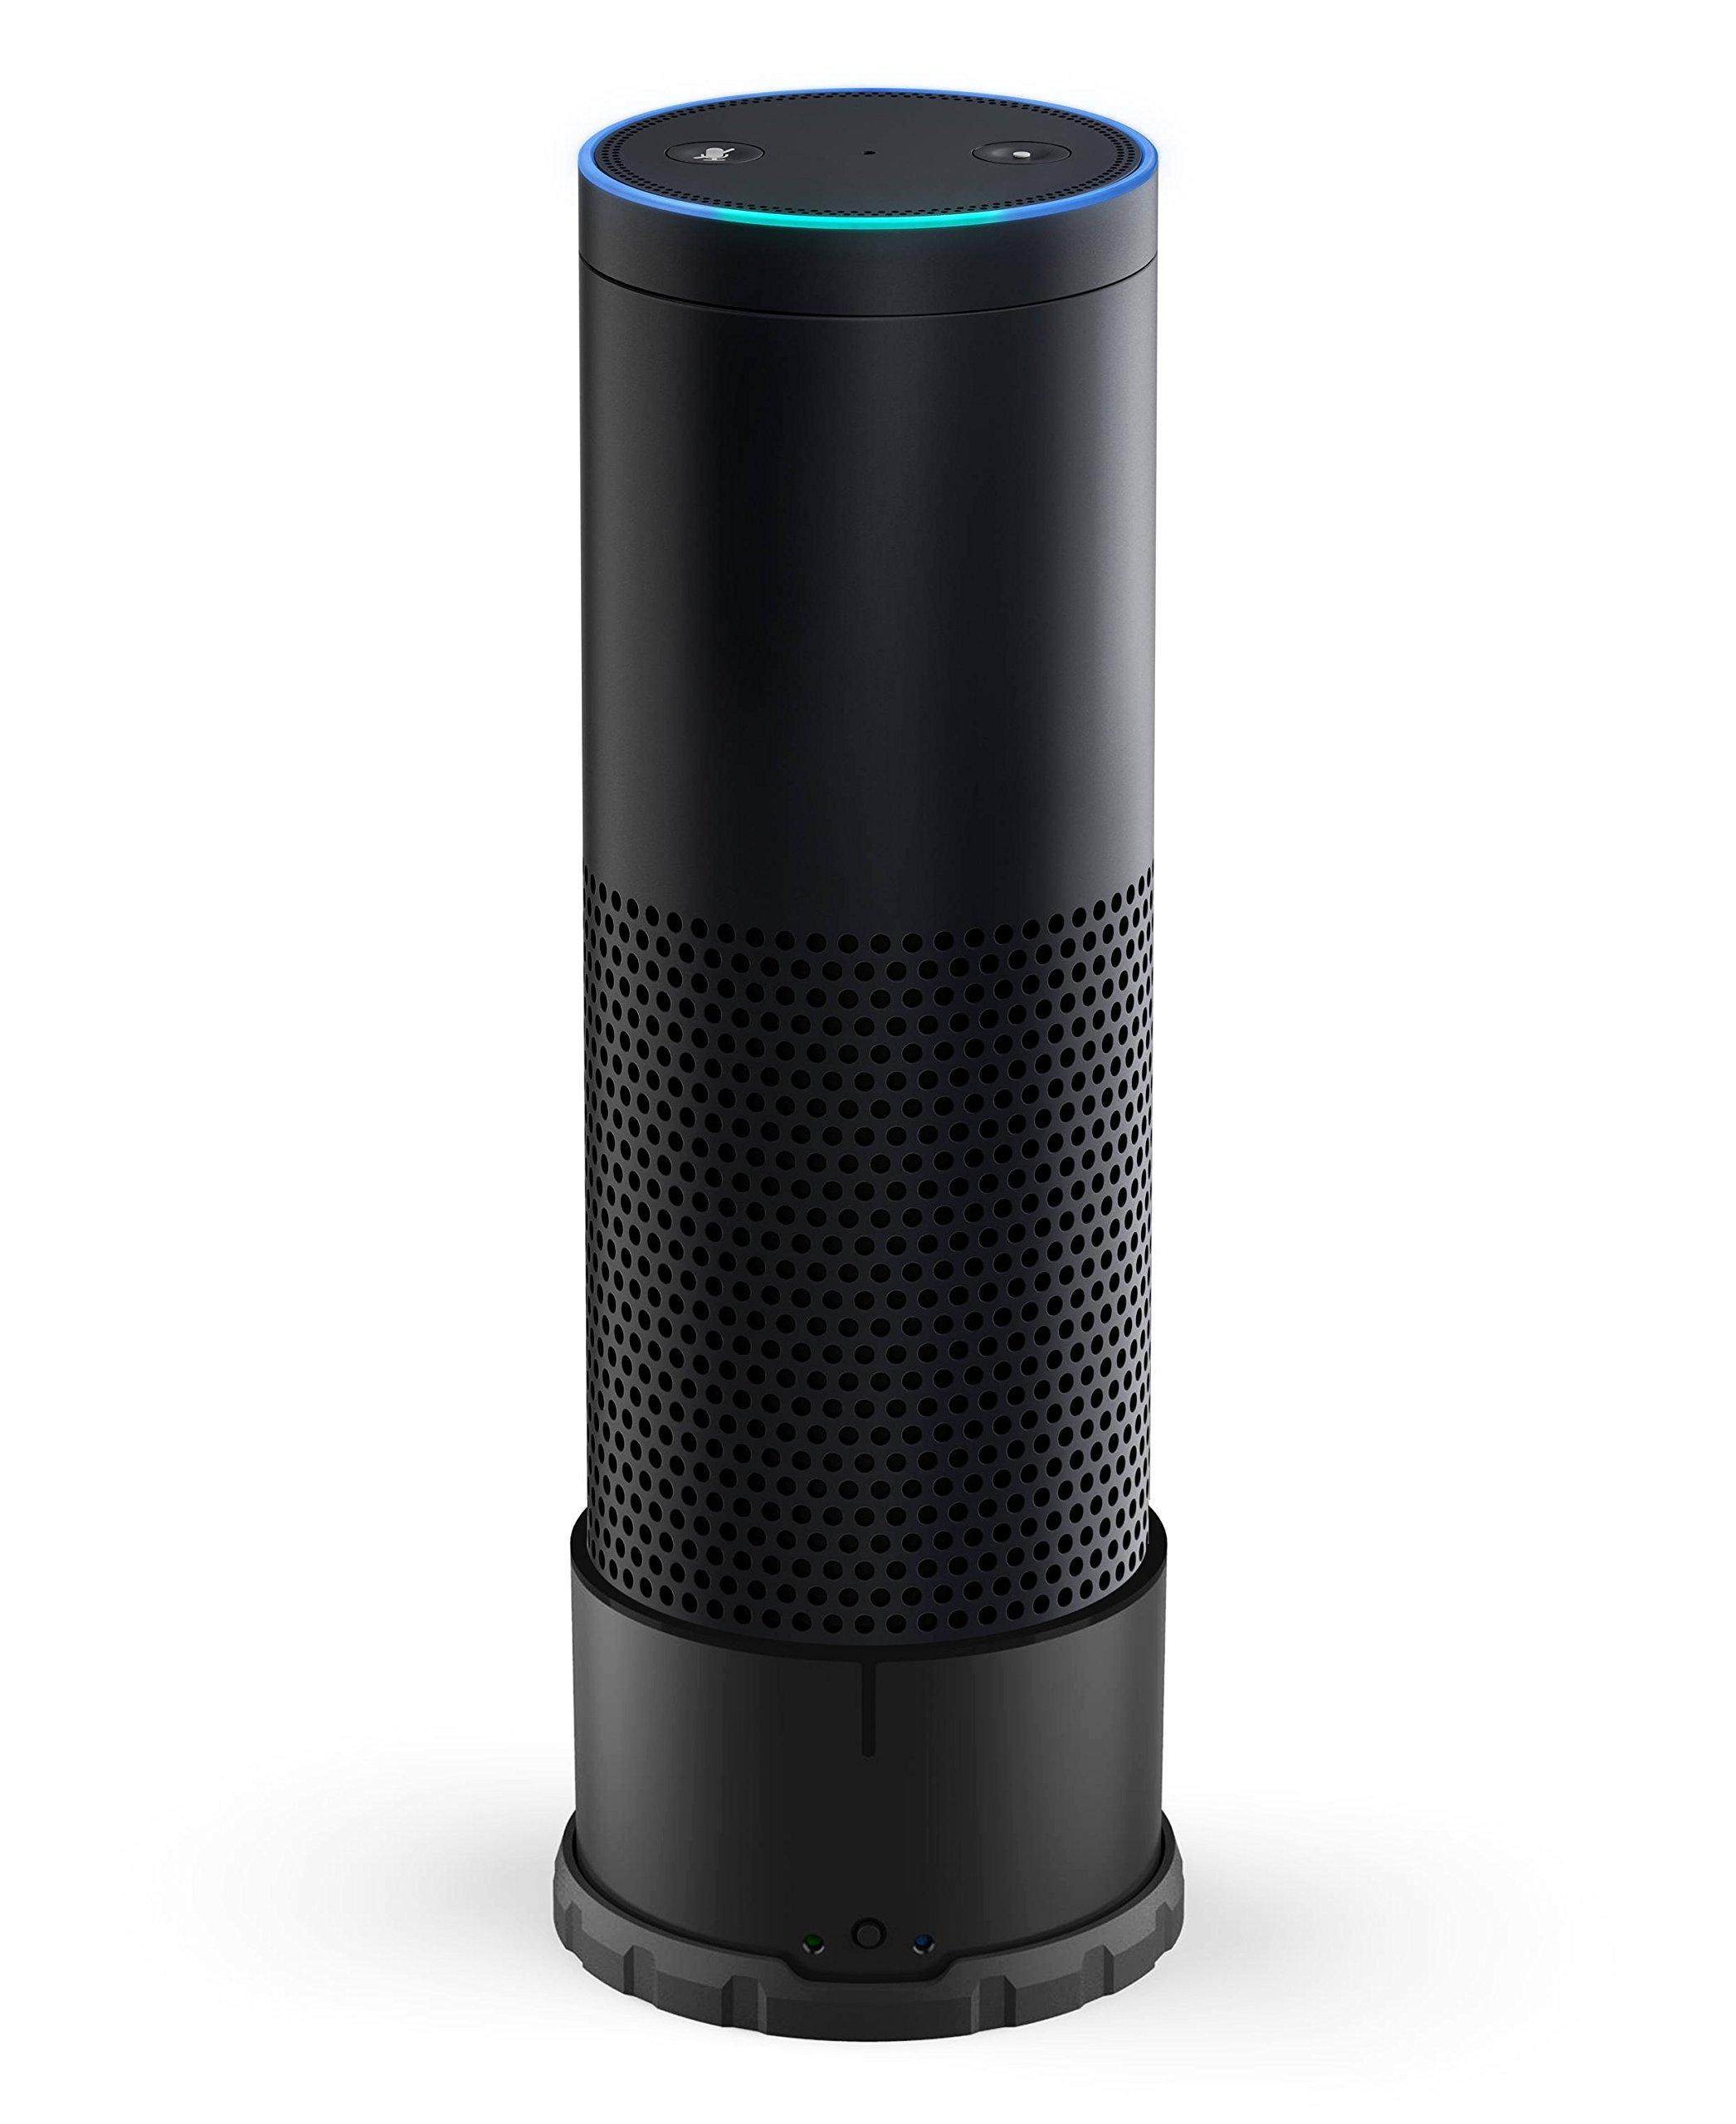 Portable Battery Base for Echo (Use Echo Anywhere) NOT COMPATIBLE WITH THE NEW ECHO PLUS